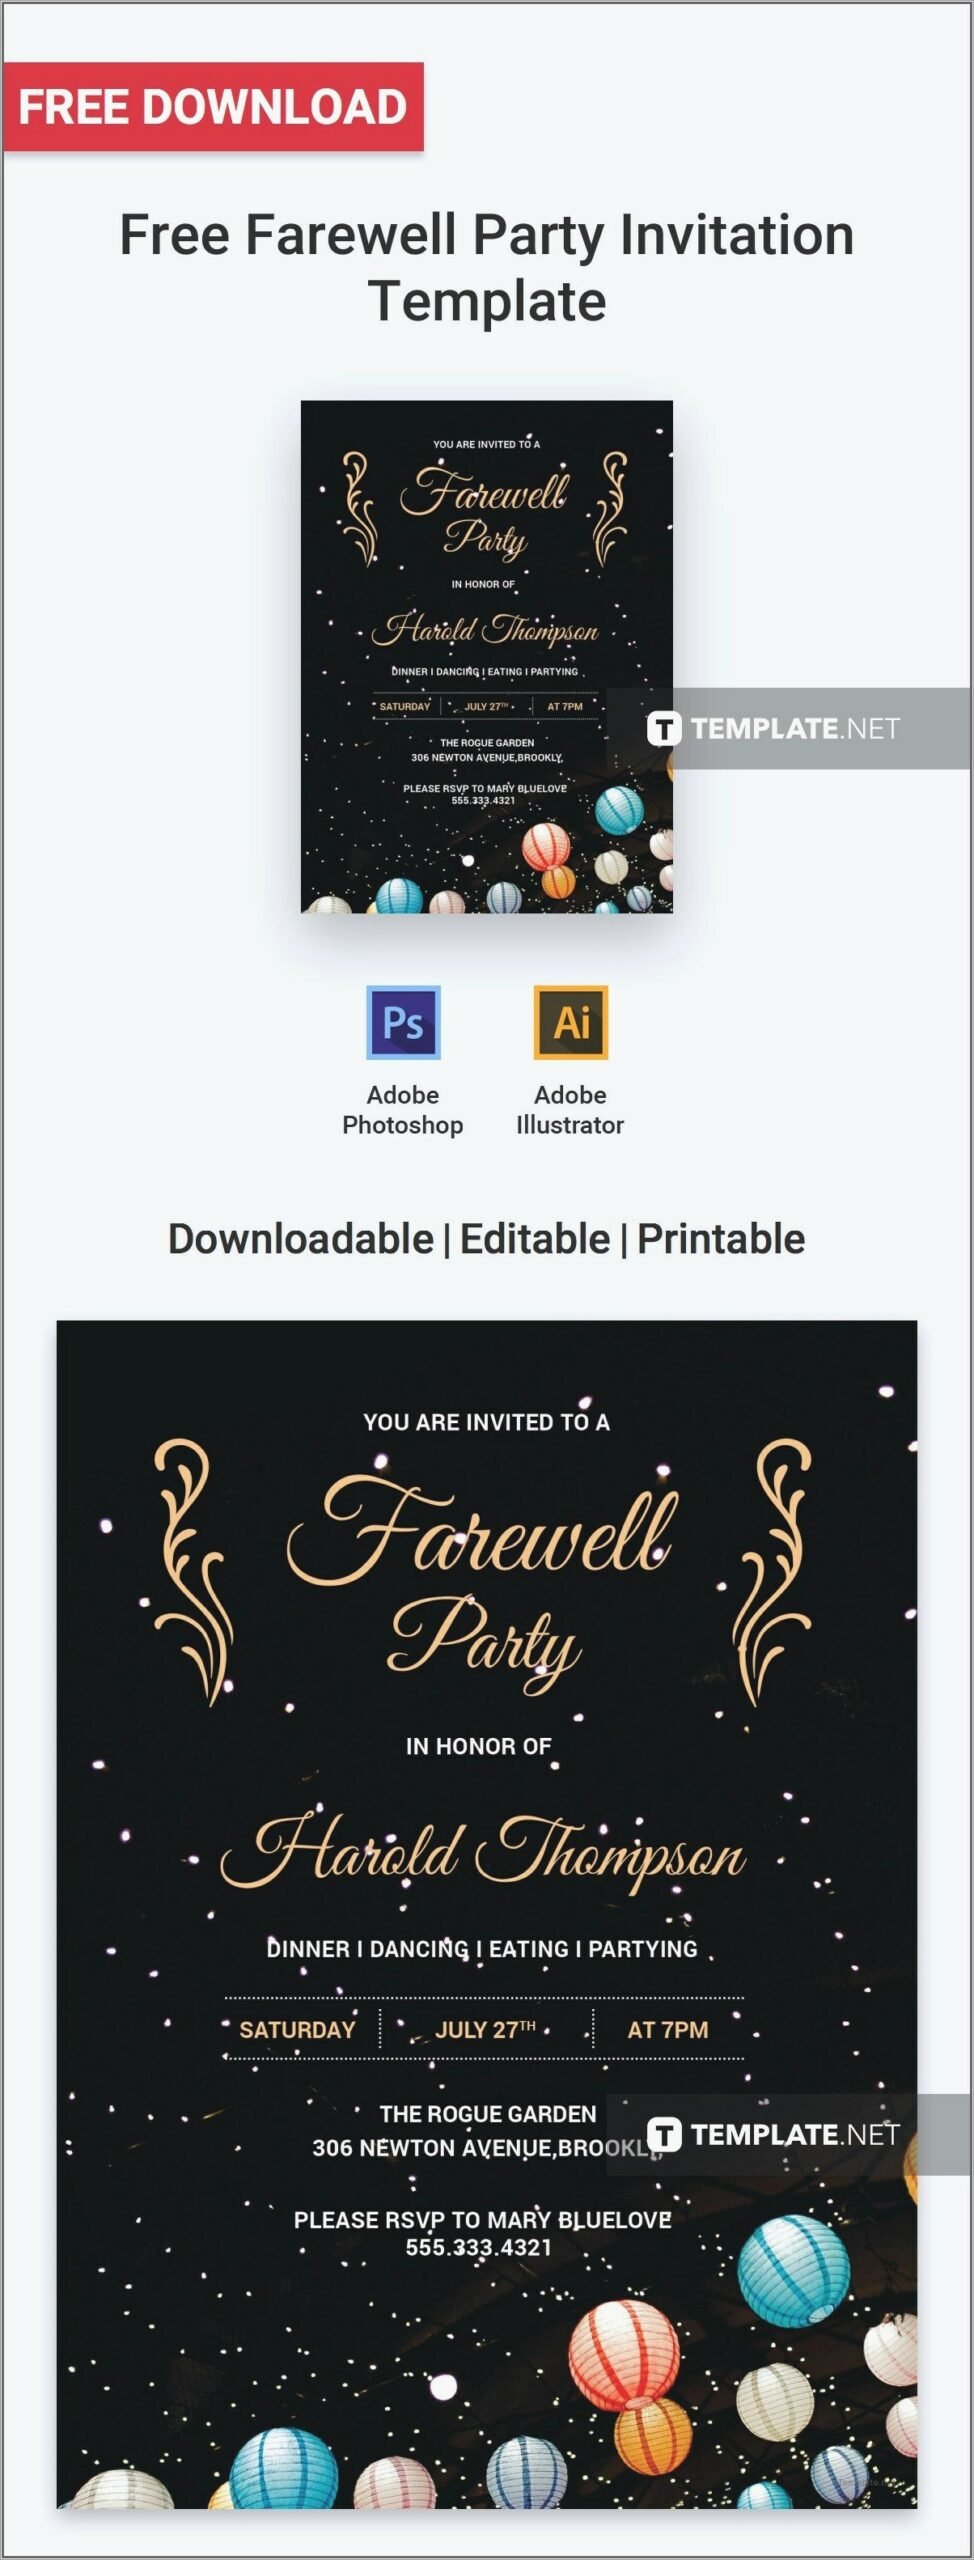 Blank Farewell Invitation Template Scaled